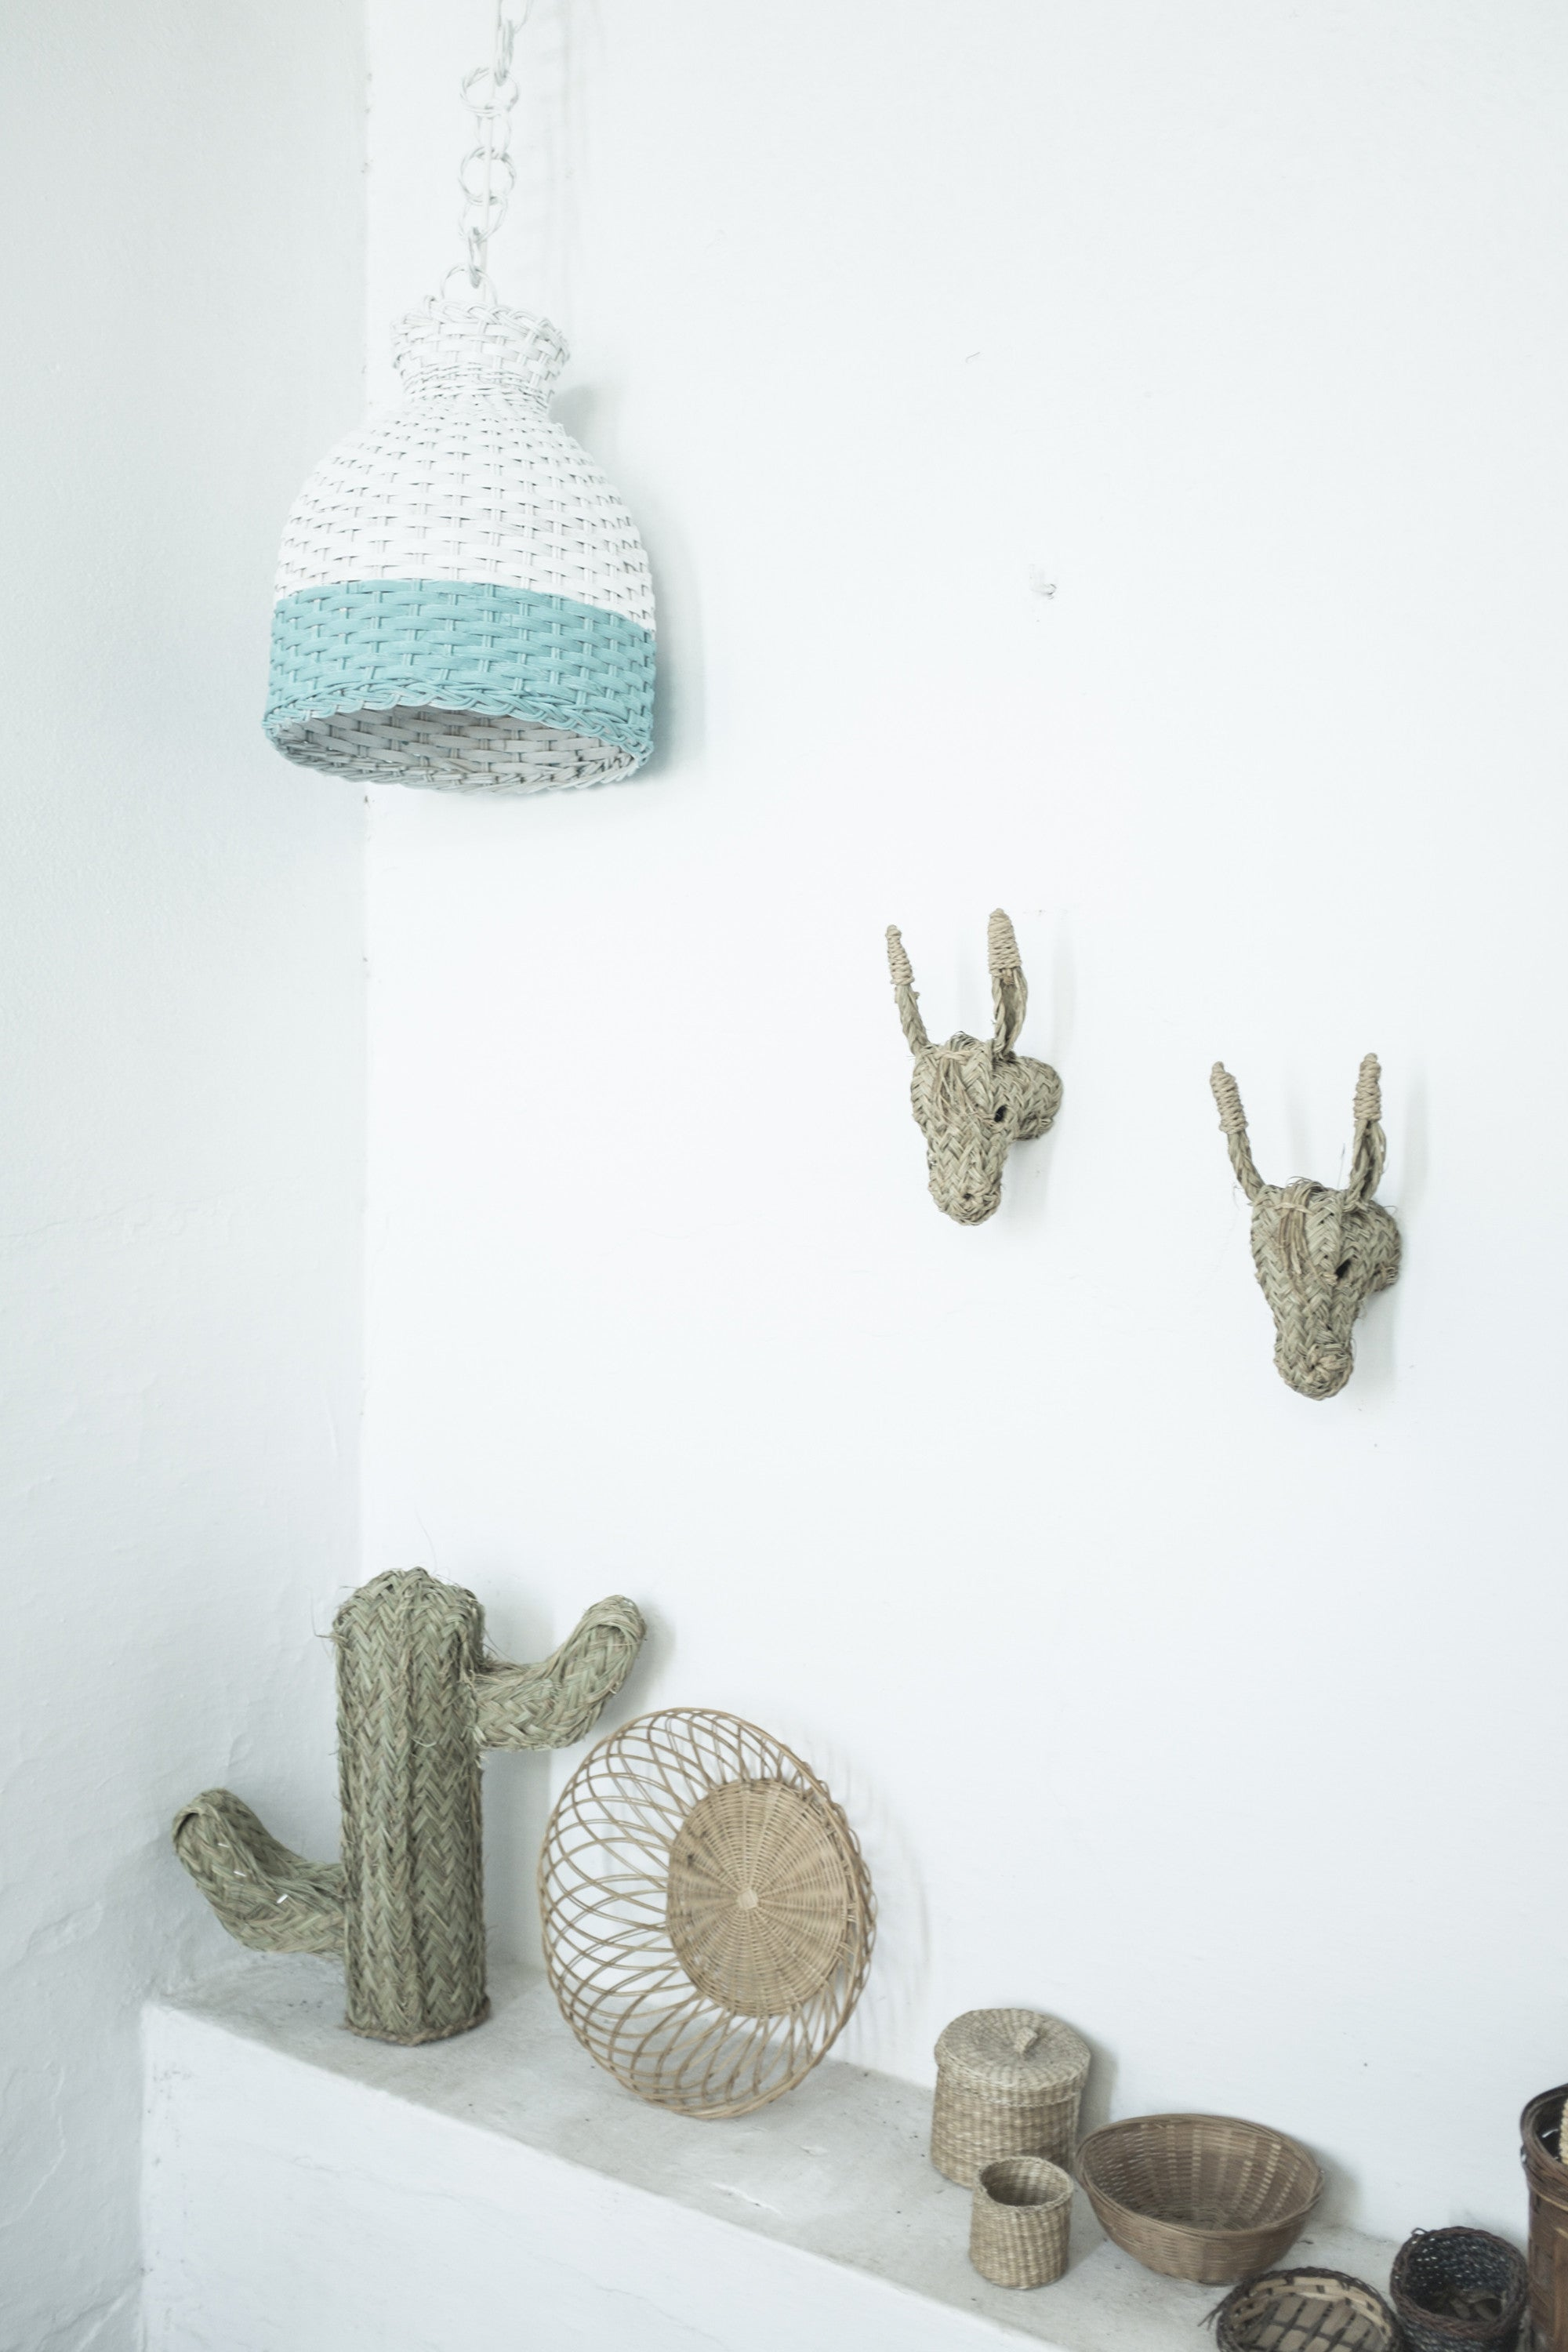 """Mini cactus"", cactus de esparto para decorar."